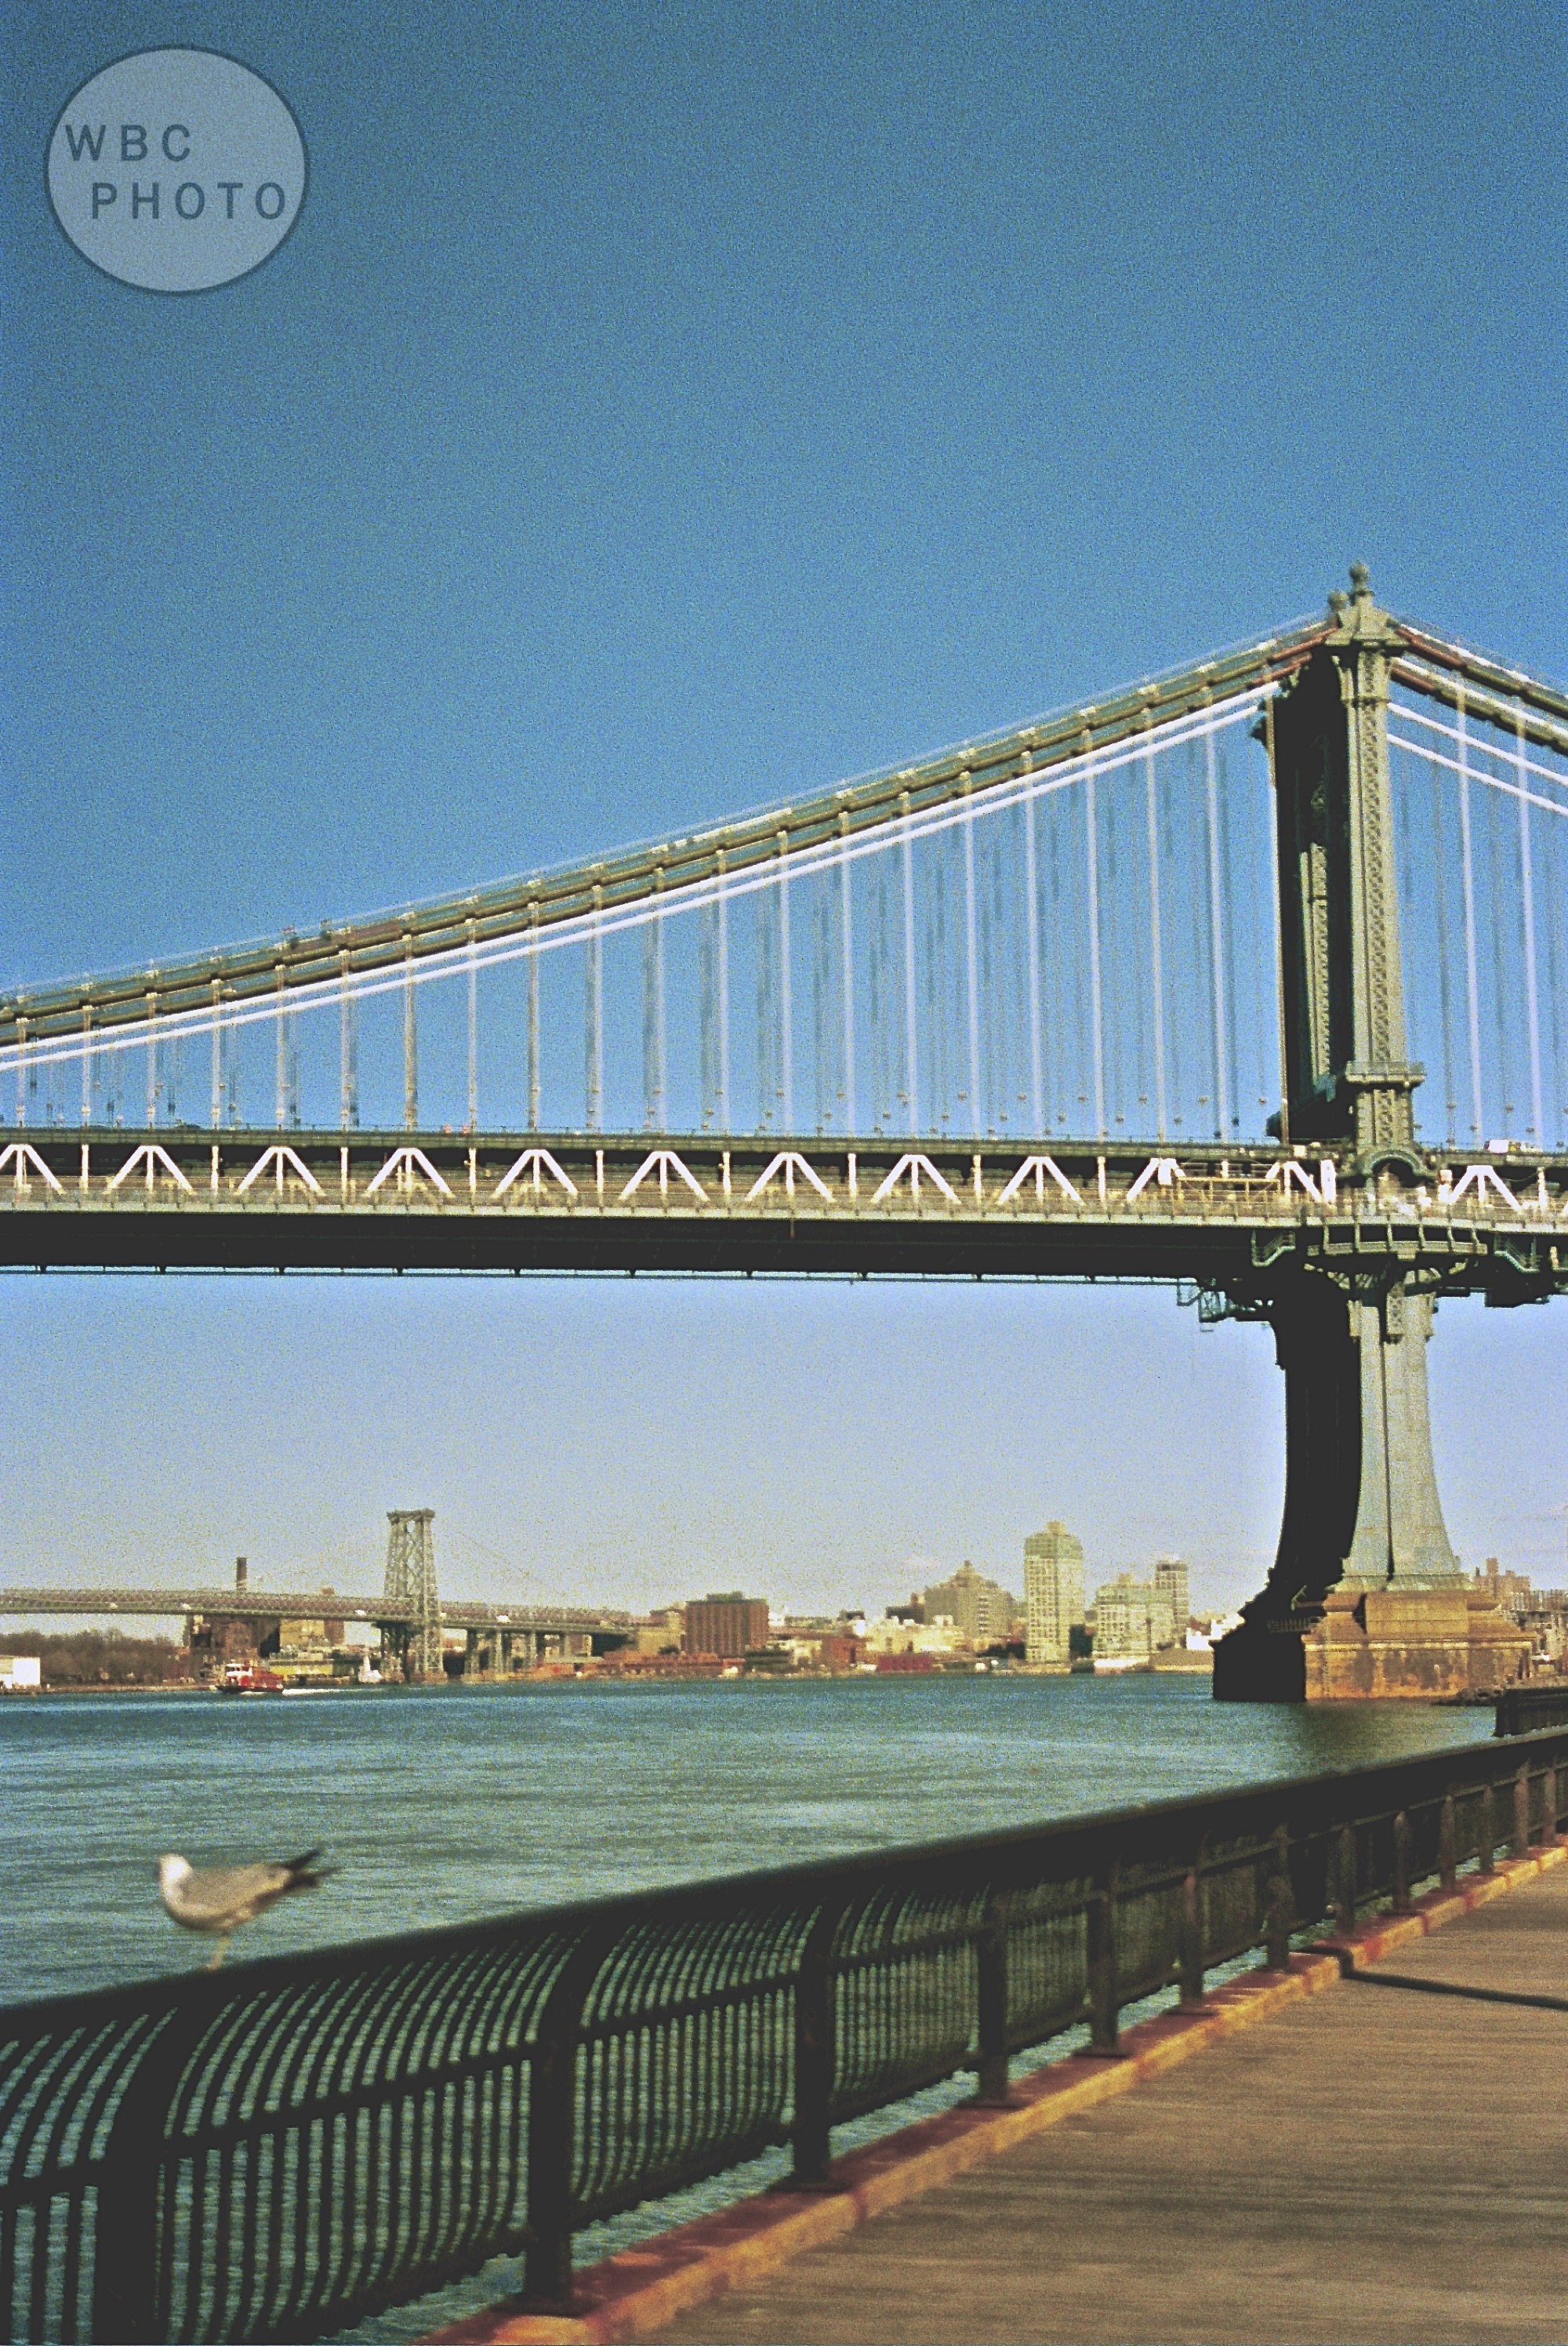 seagull-in-front-of-manhattan-bridge-wbc-film.jpg